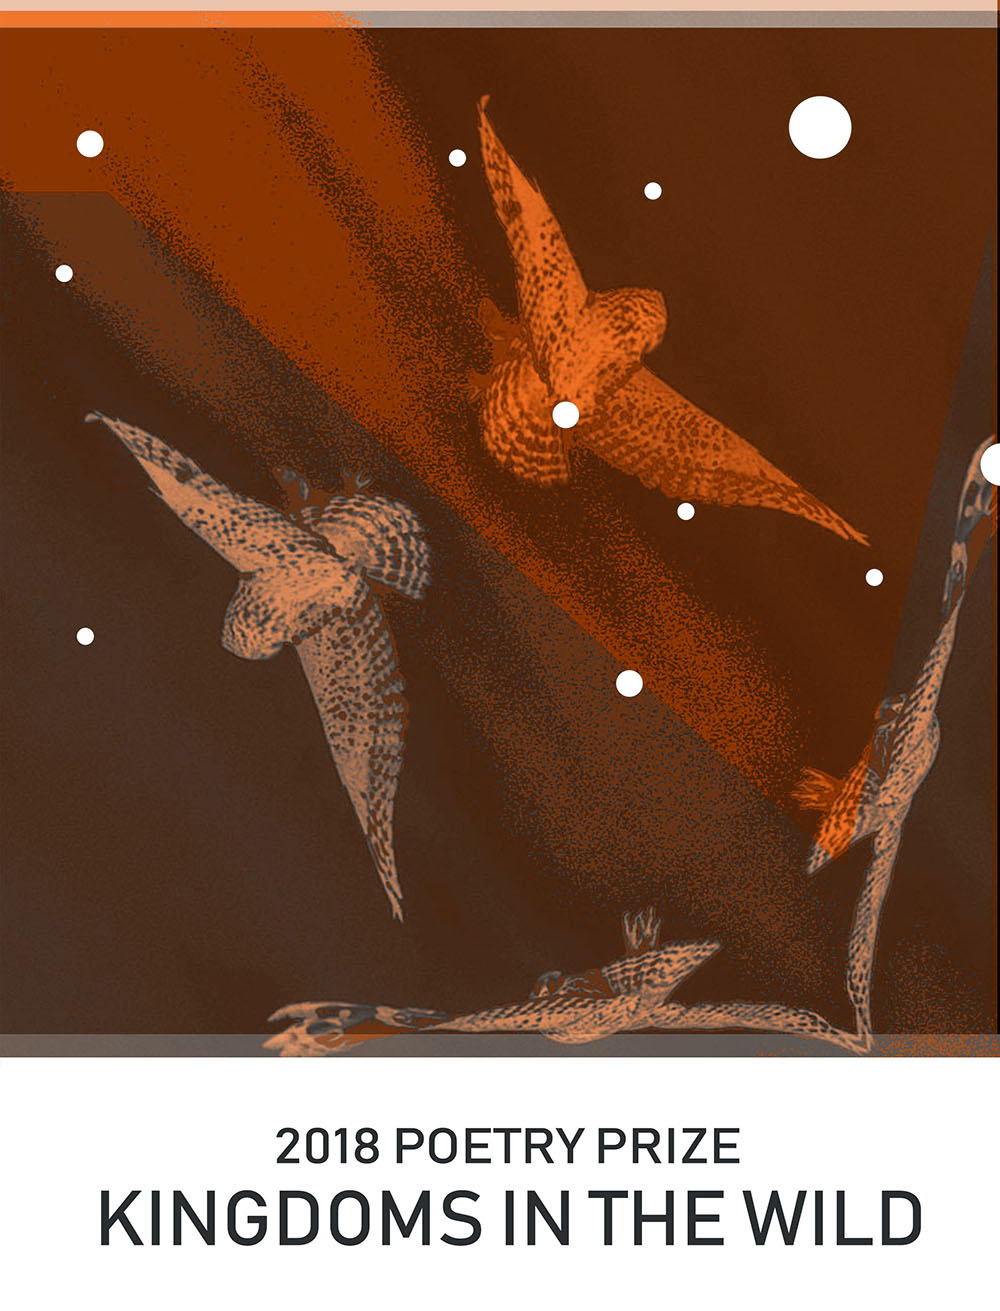 2018 - CALL FOR POETRY PRIZE 2.jpg